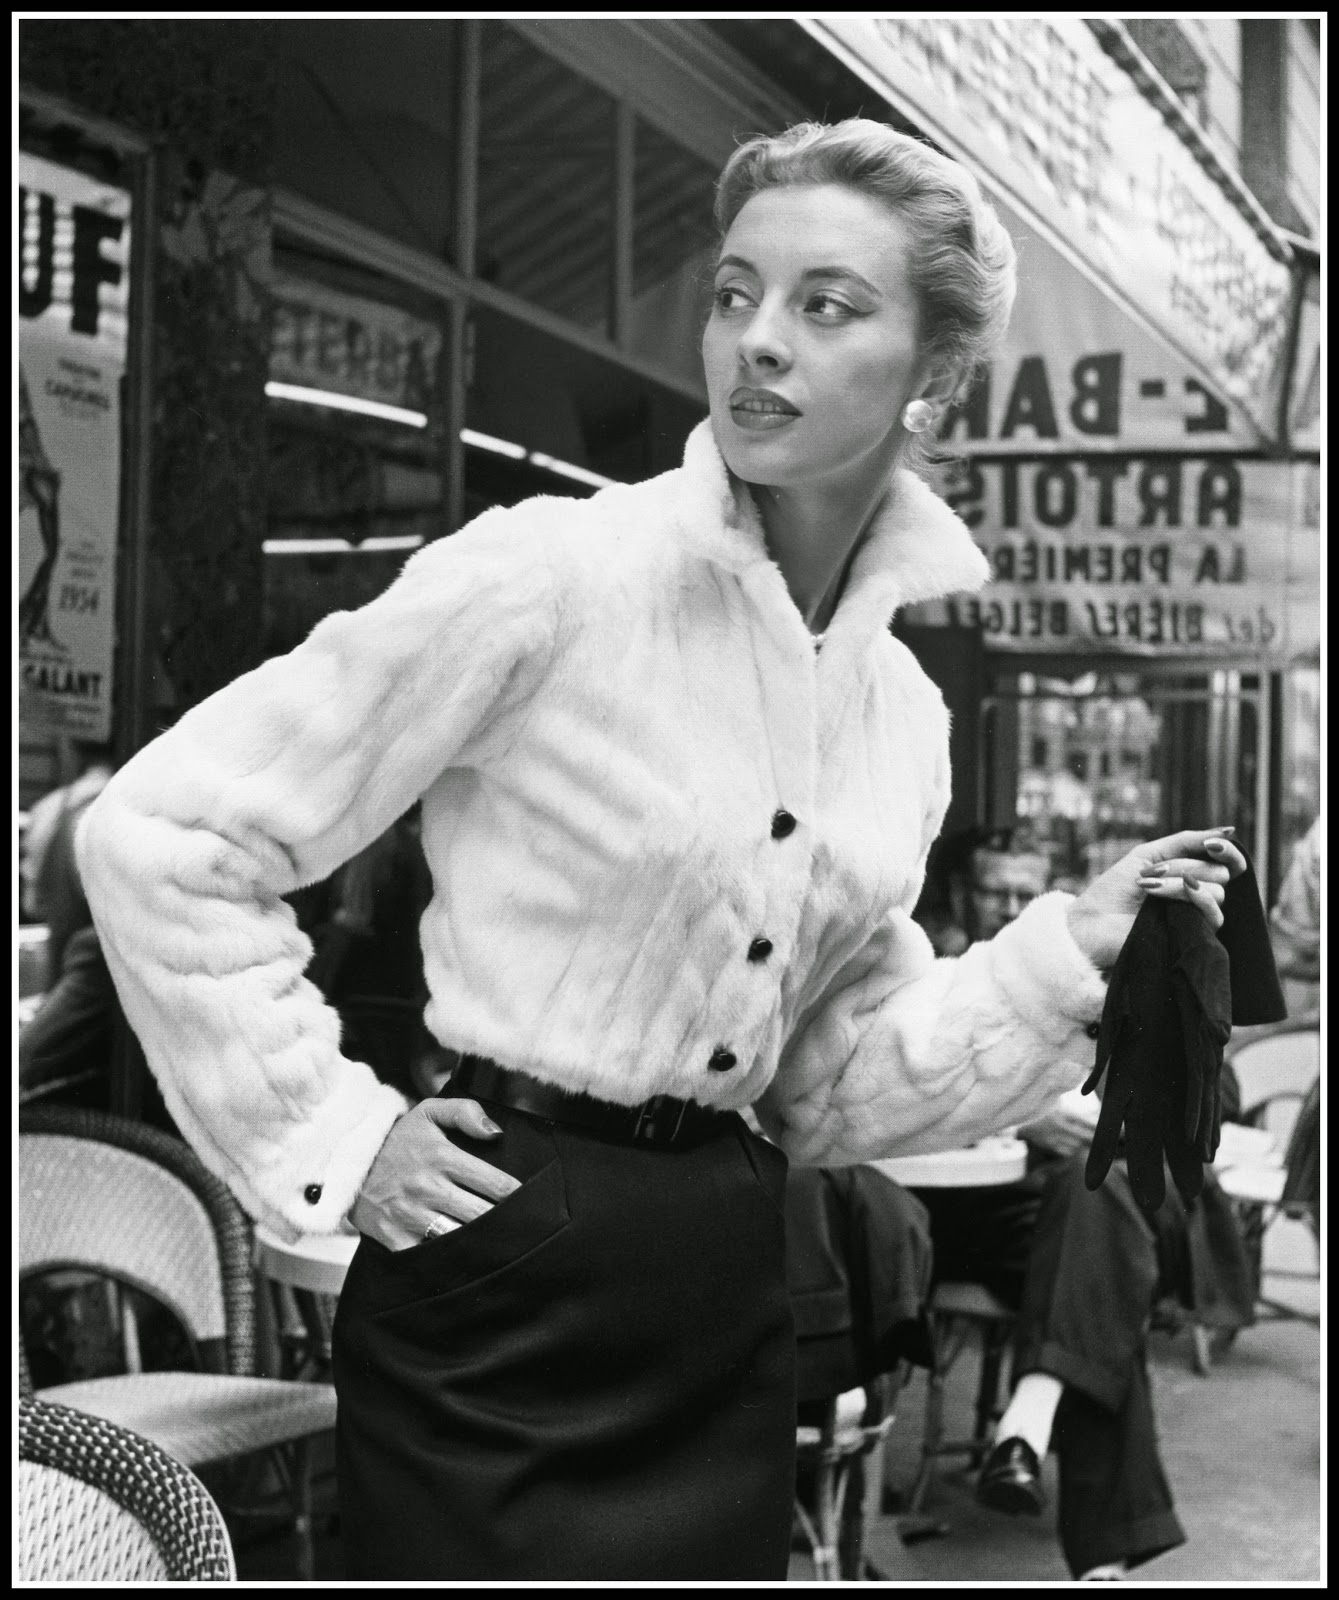 1000+ images about 50s women's fashion on Pinterest ...